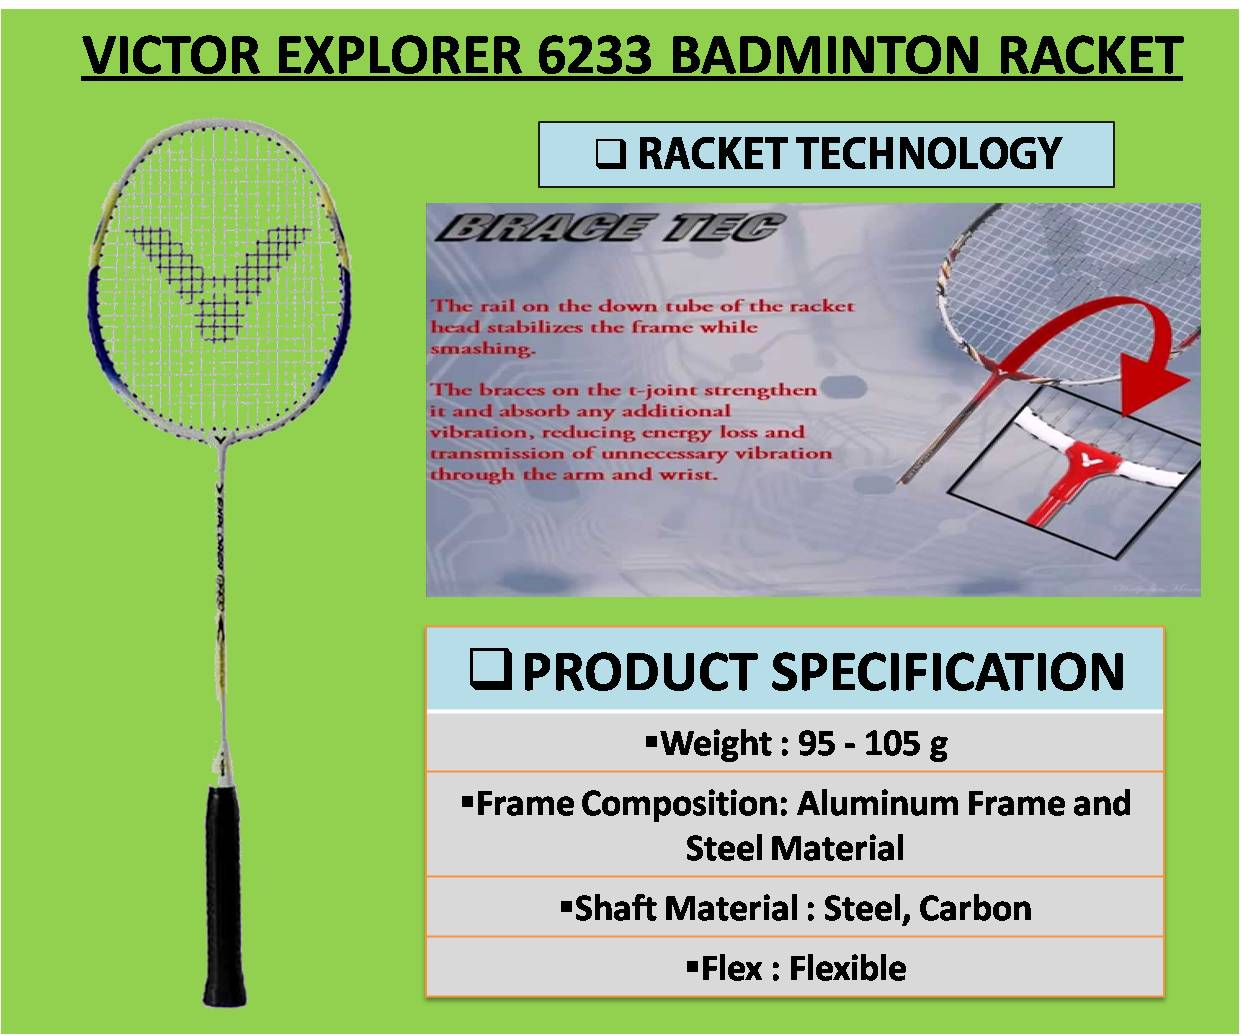 VICTOR EXPLORER 6233 BADMINTON RACKET